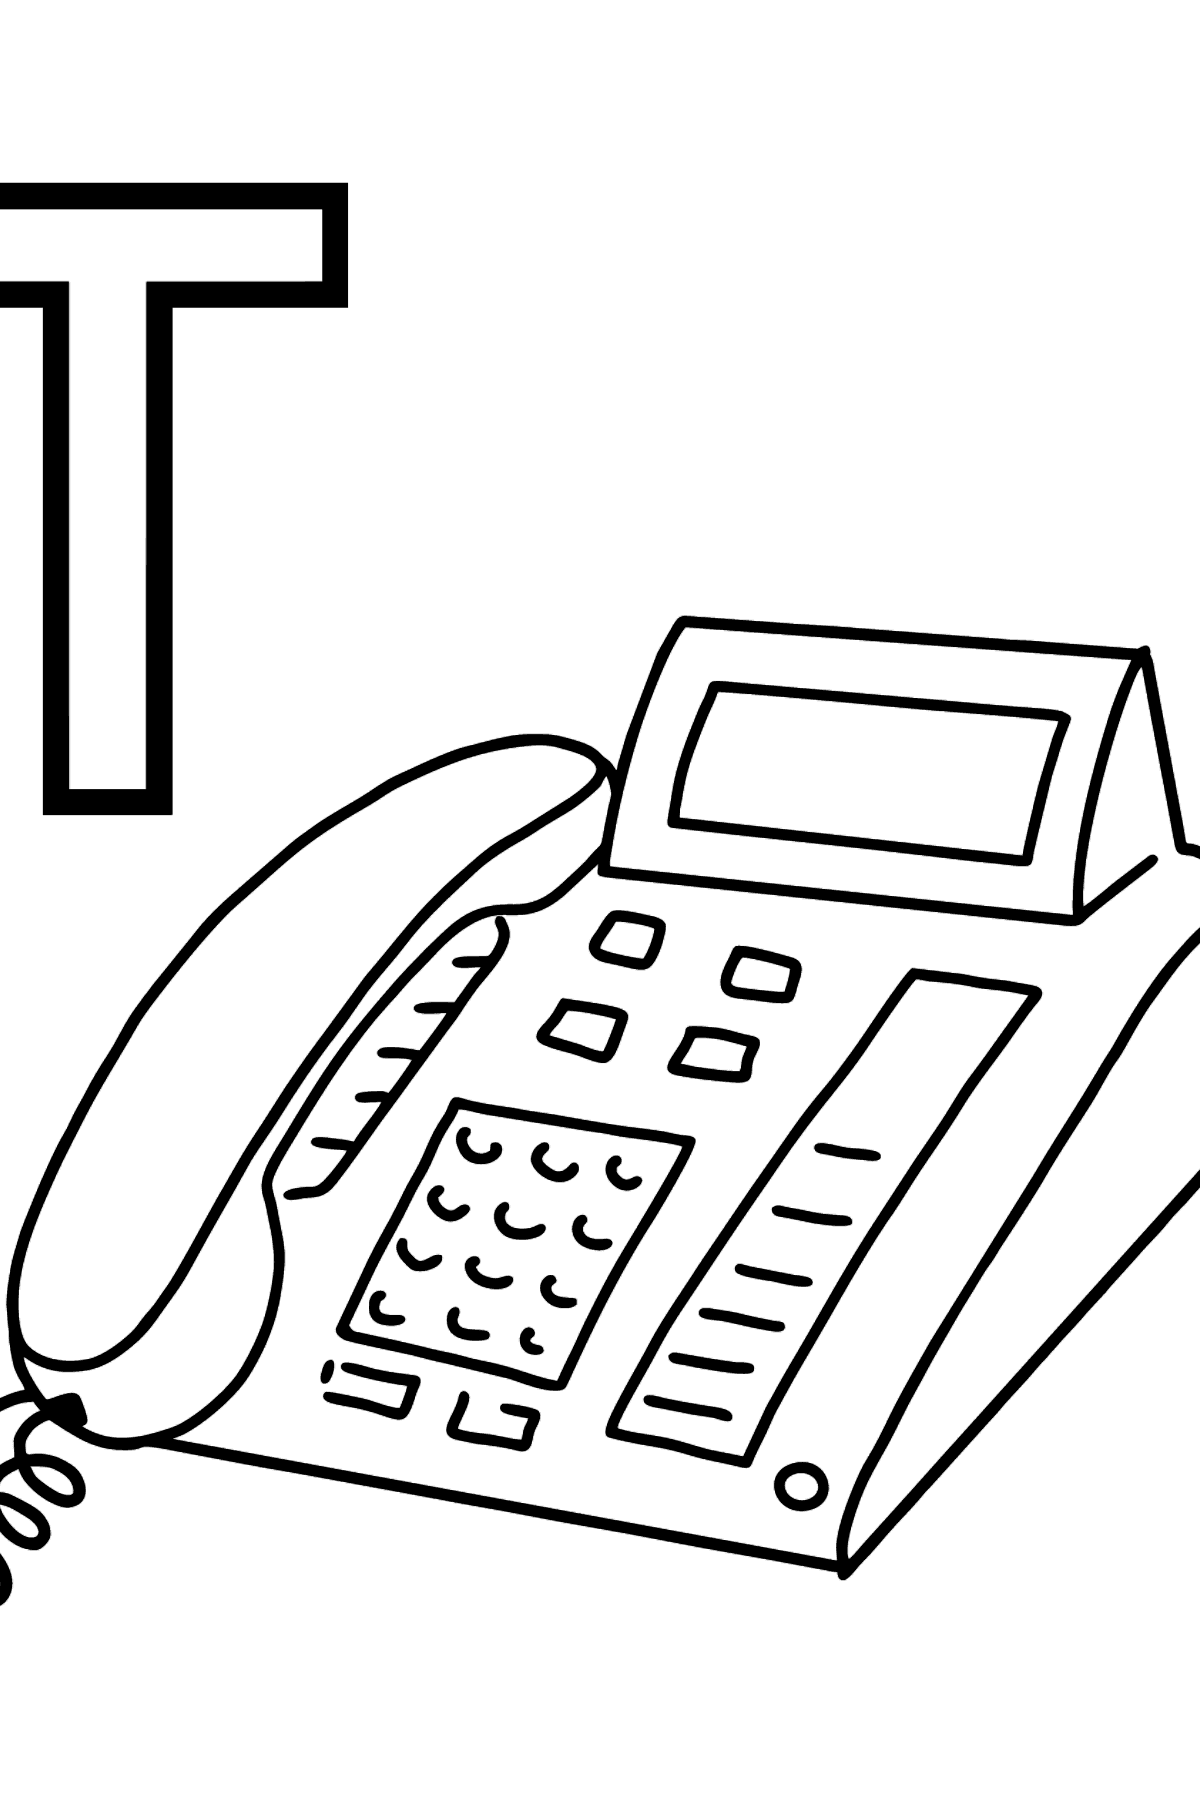 German Letter T coloring pages - TELEFON - Coloring Pages for Kids